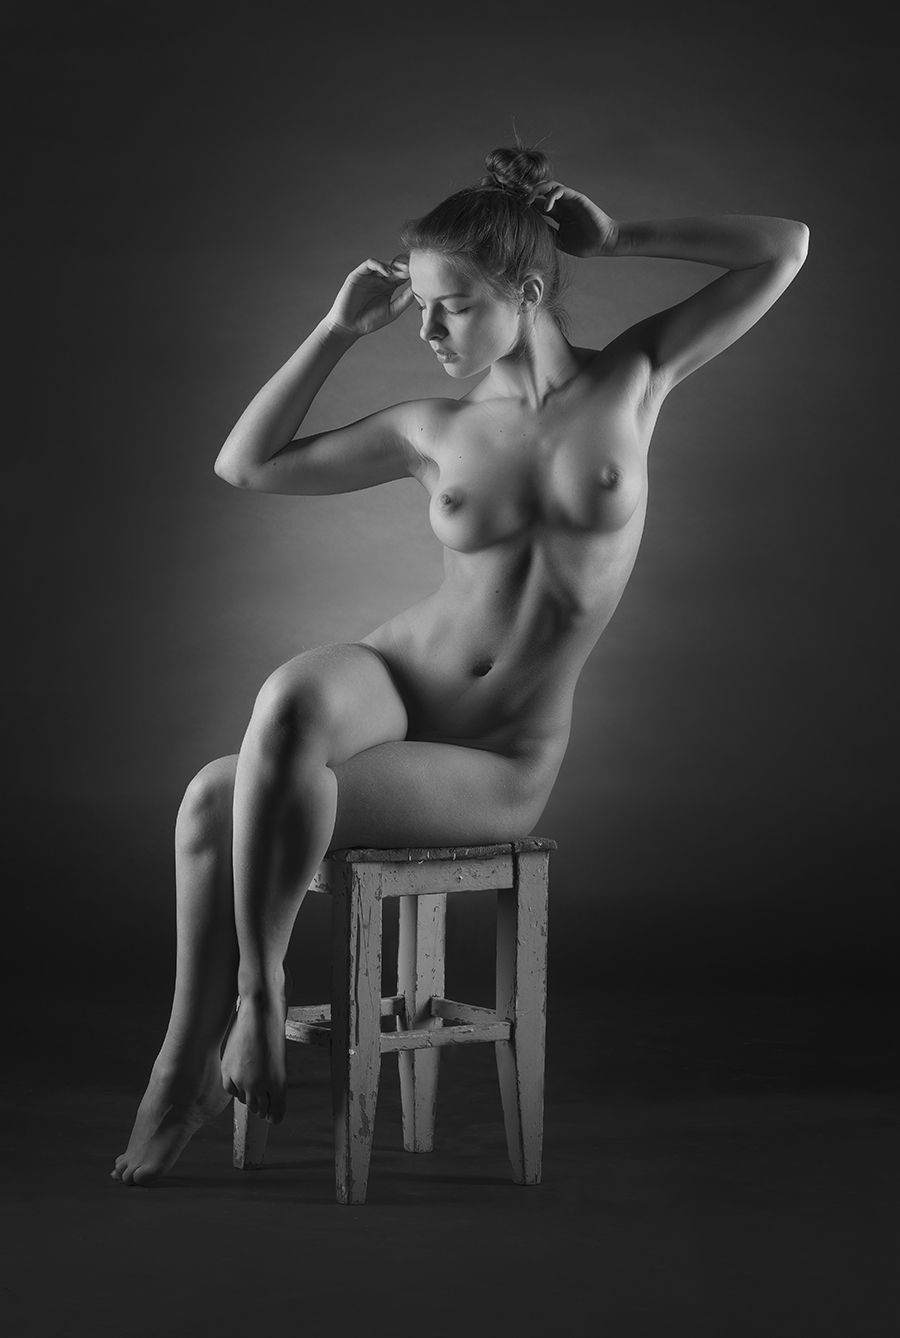 Julia on chair